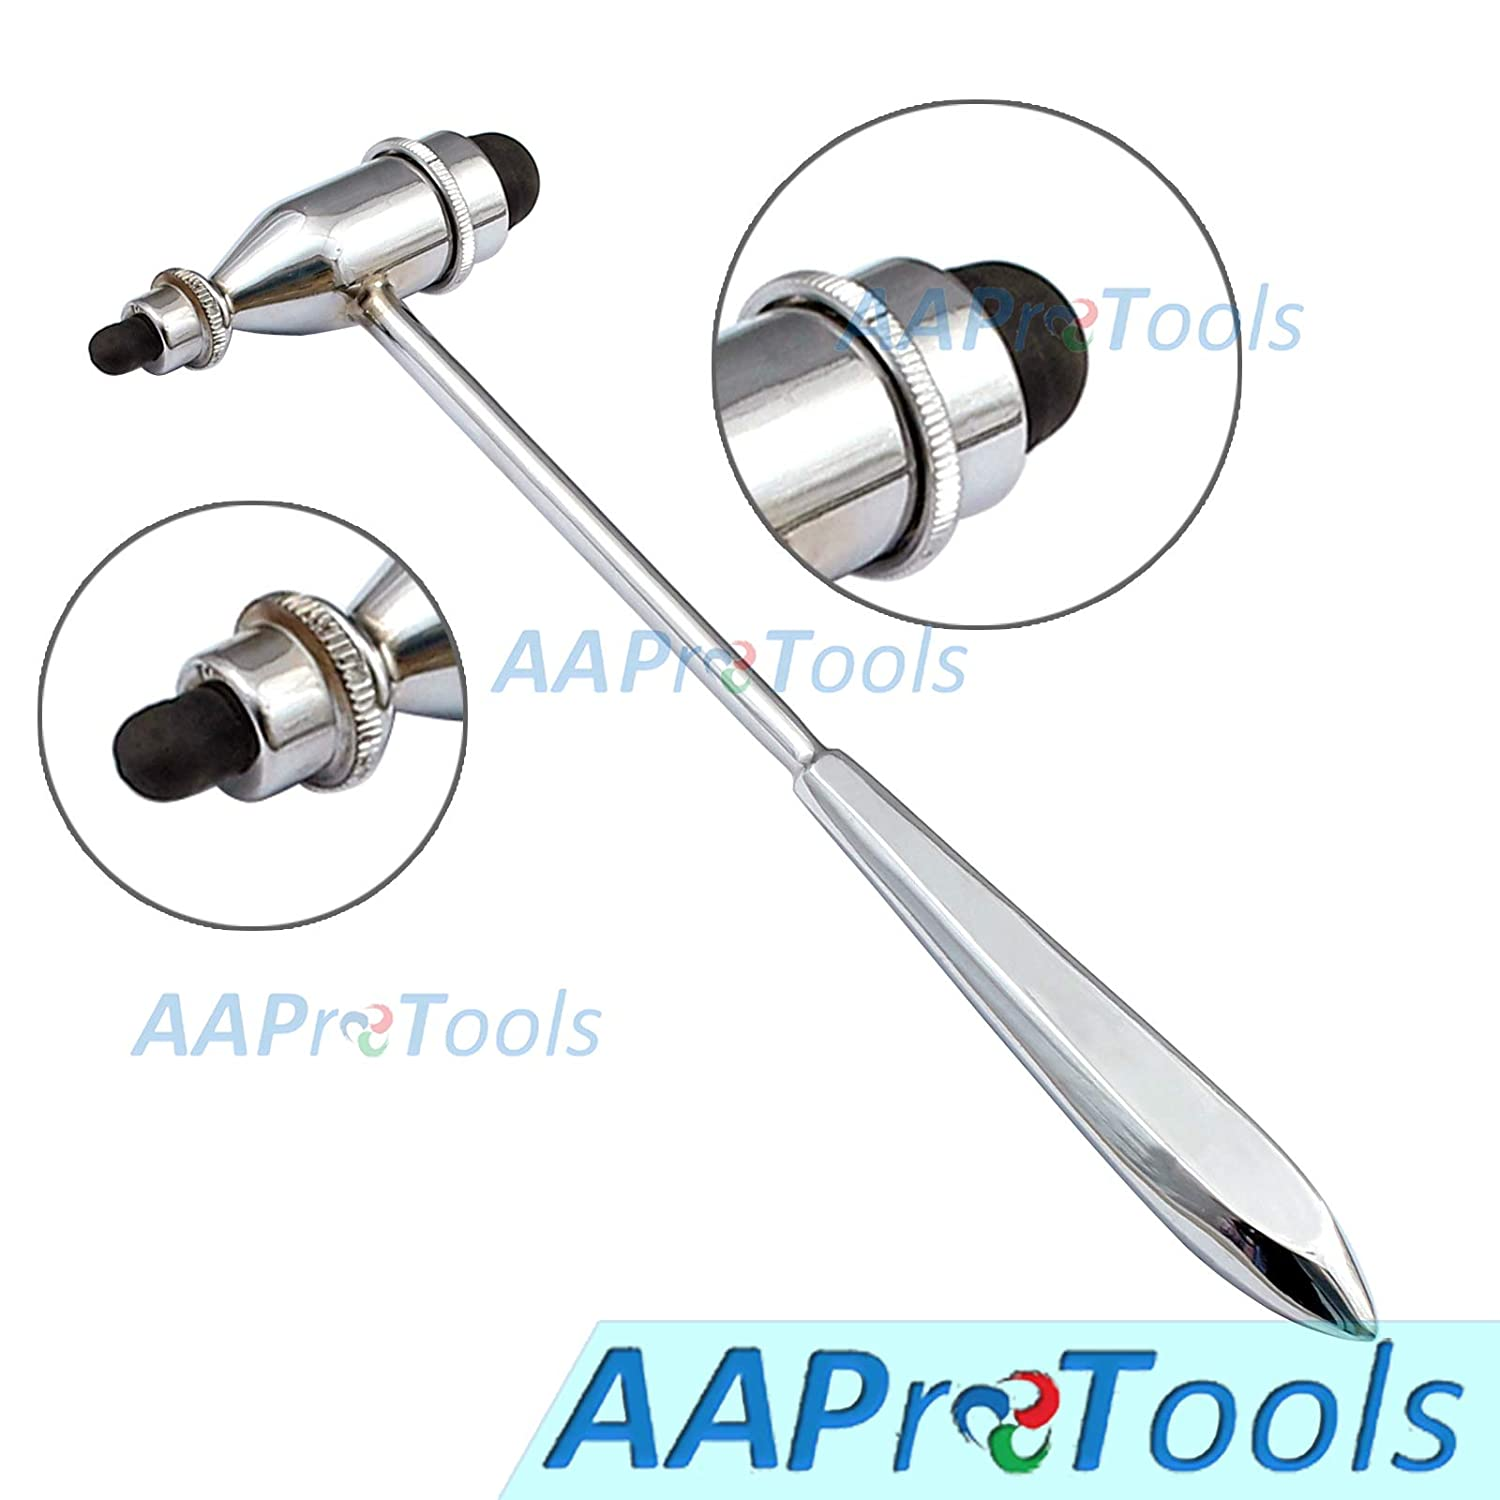 AAProTools Reflex Hammer, Neurological Reflex Hammer with Pointed Tip Handle, for Neurologic Reflex Diagnosis and Testing